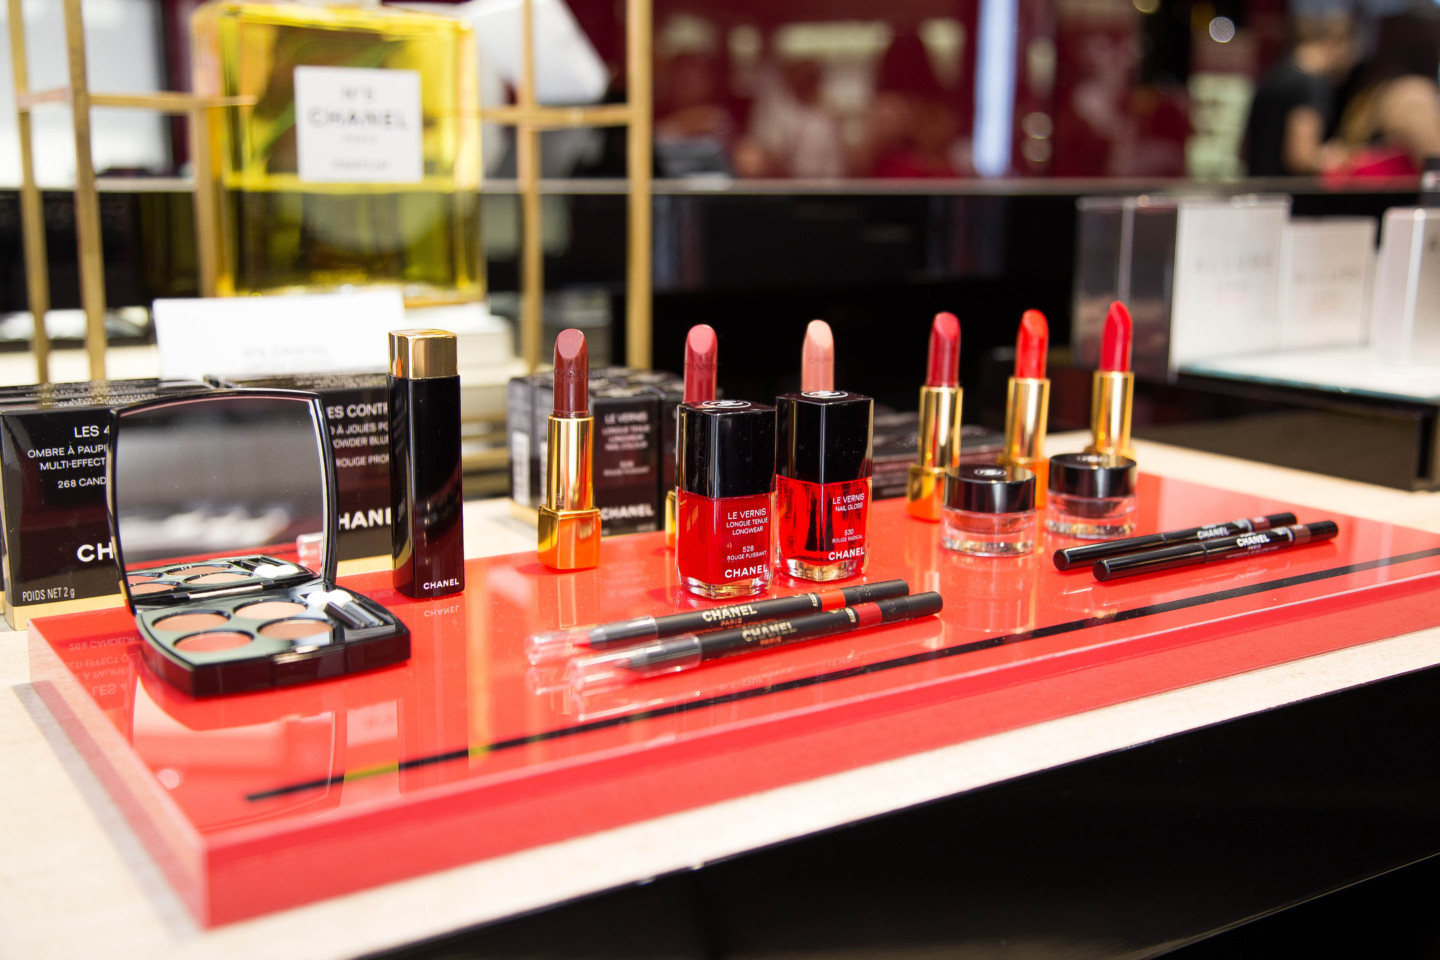 Chanel-Le-Rouge-Collection-n1-by-Lucia-Pica-firenze-valentina-coco-influencer